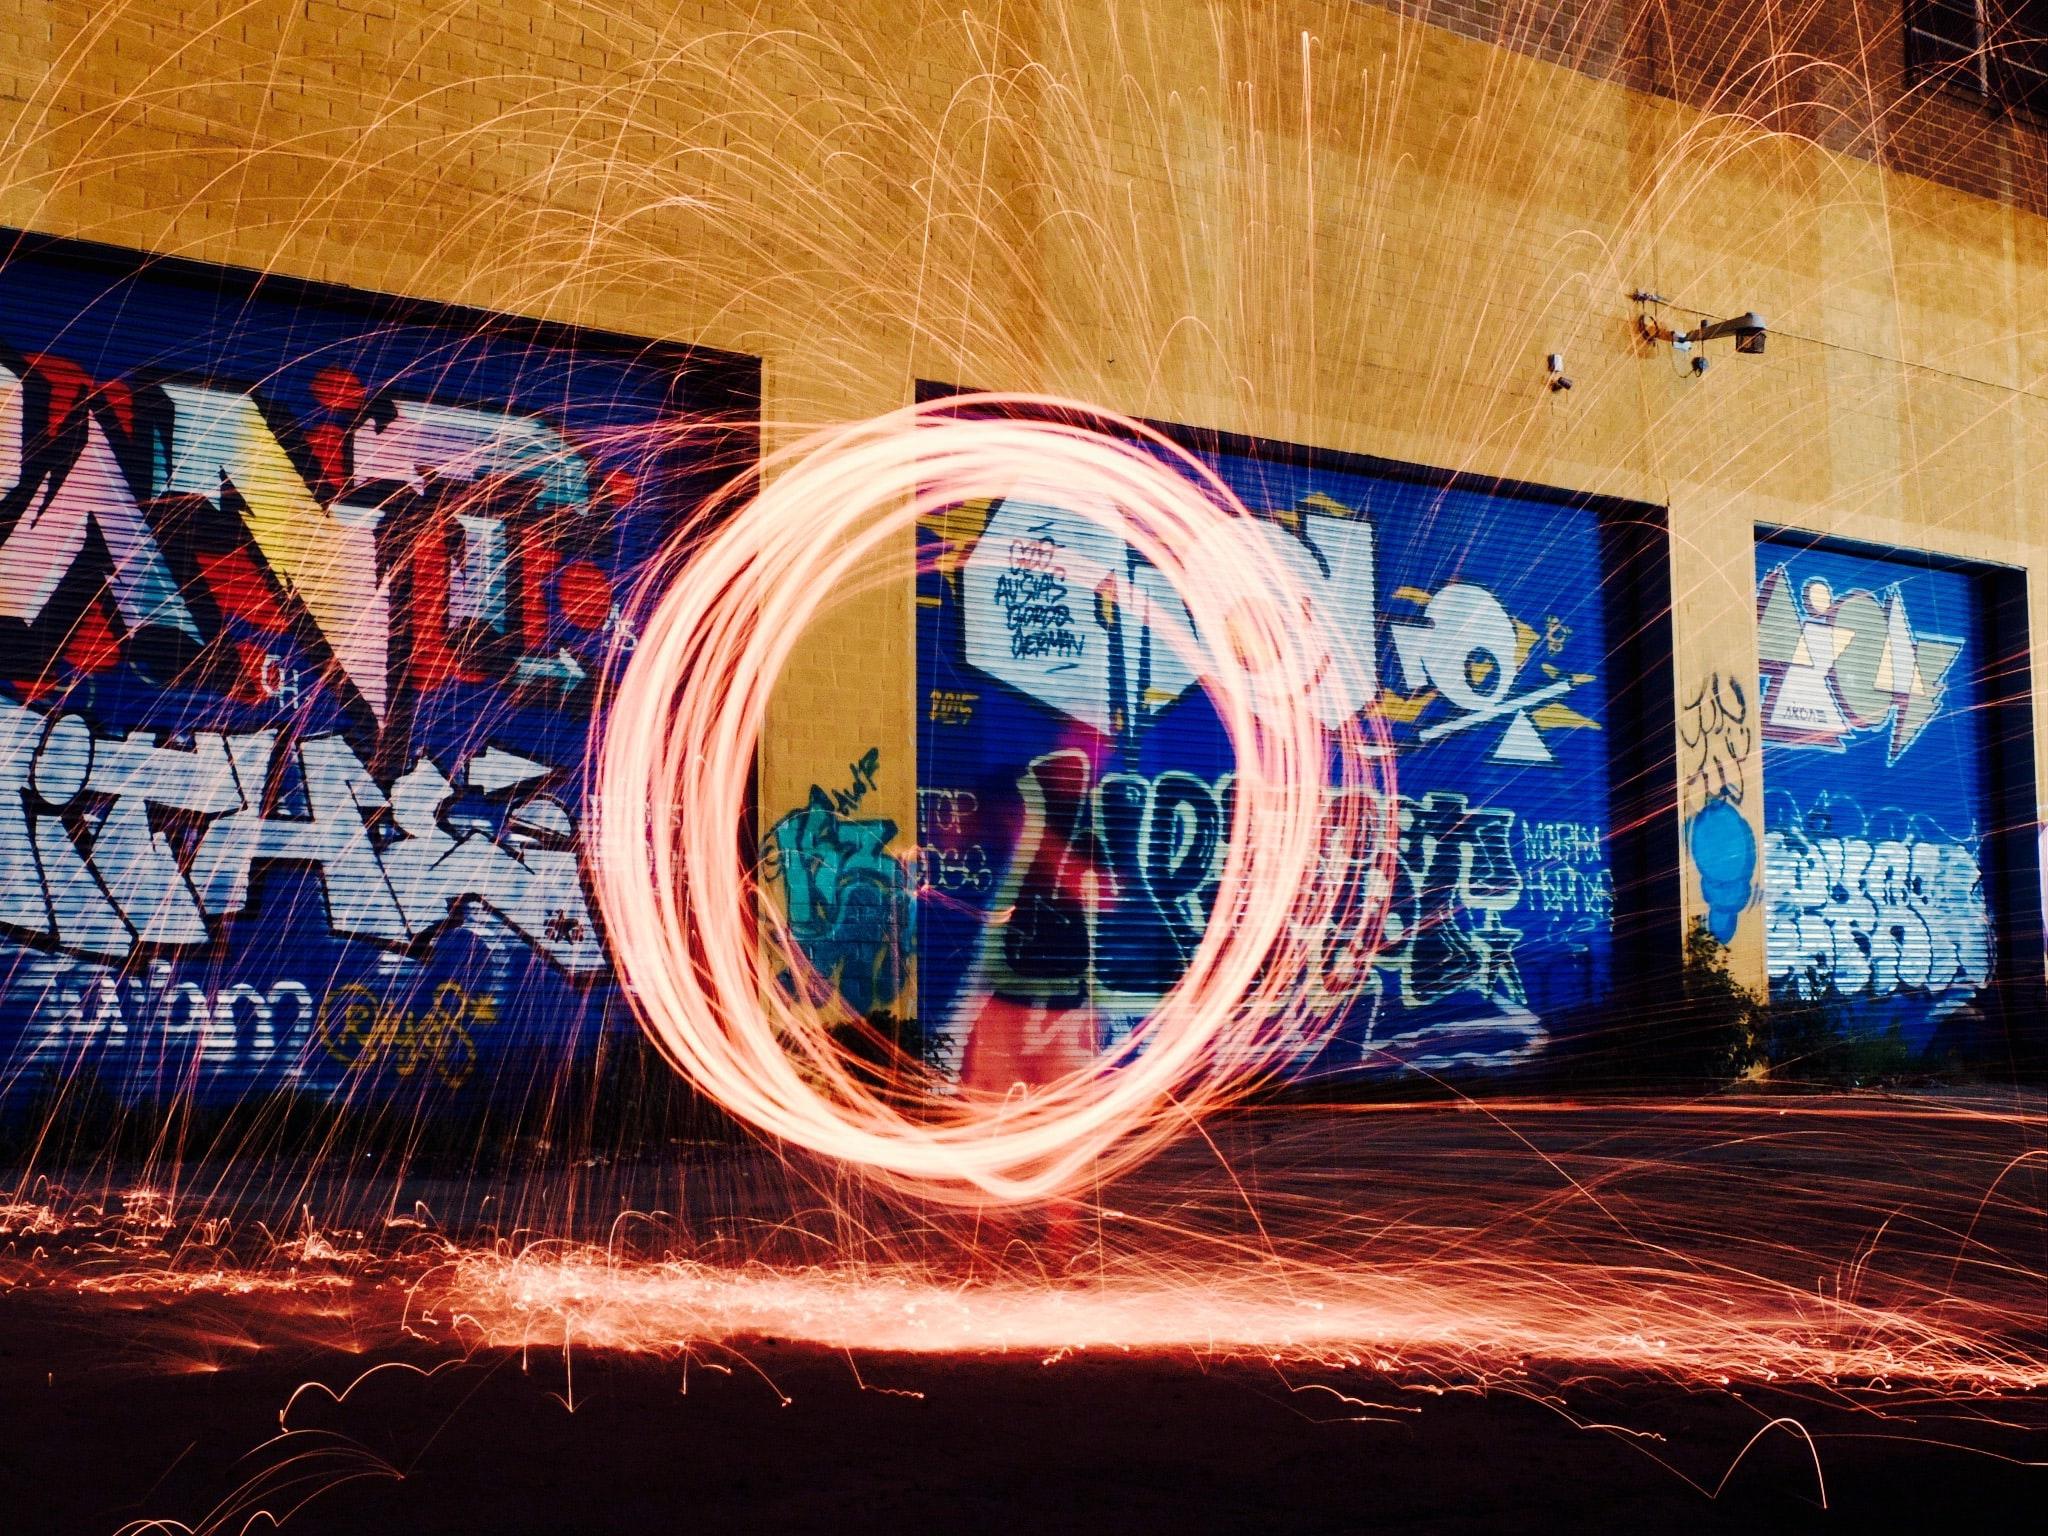 time-lapse photography of woman using steel wool